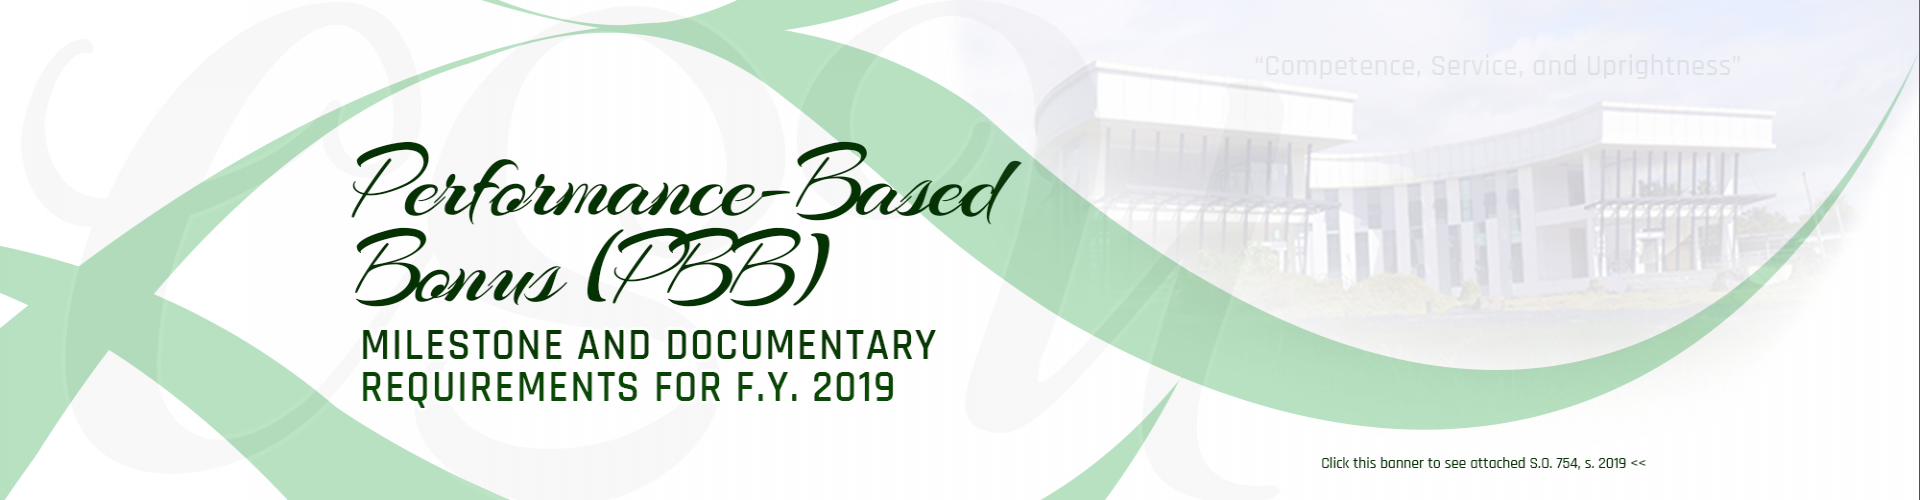 Milestrone and Documentary Requirements for FY 2019 PBB